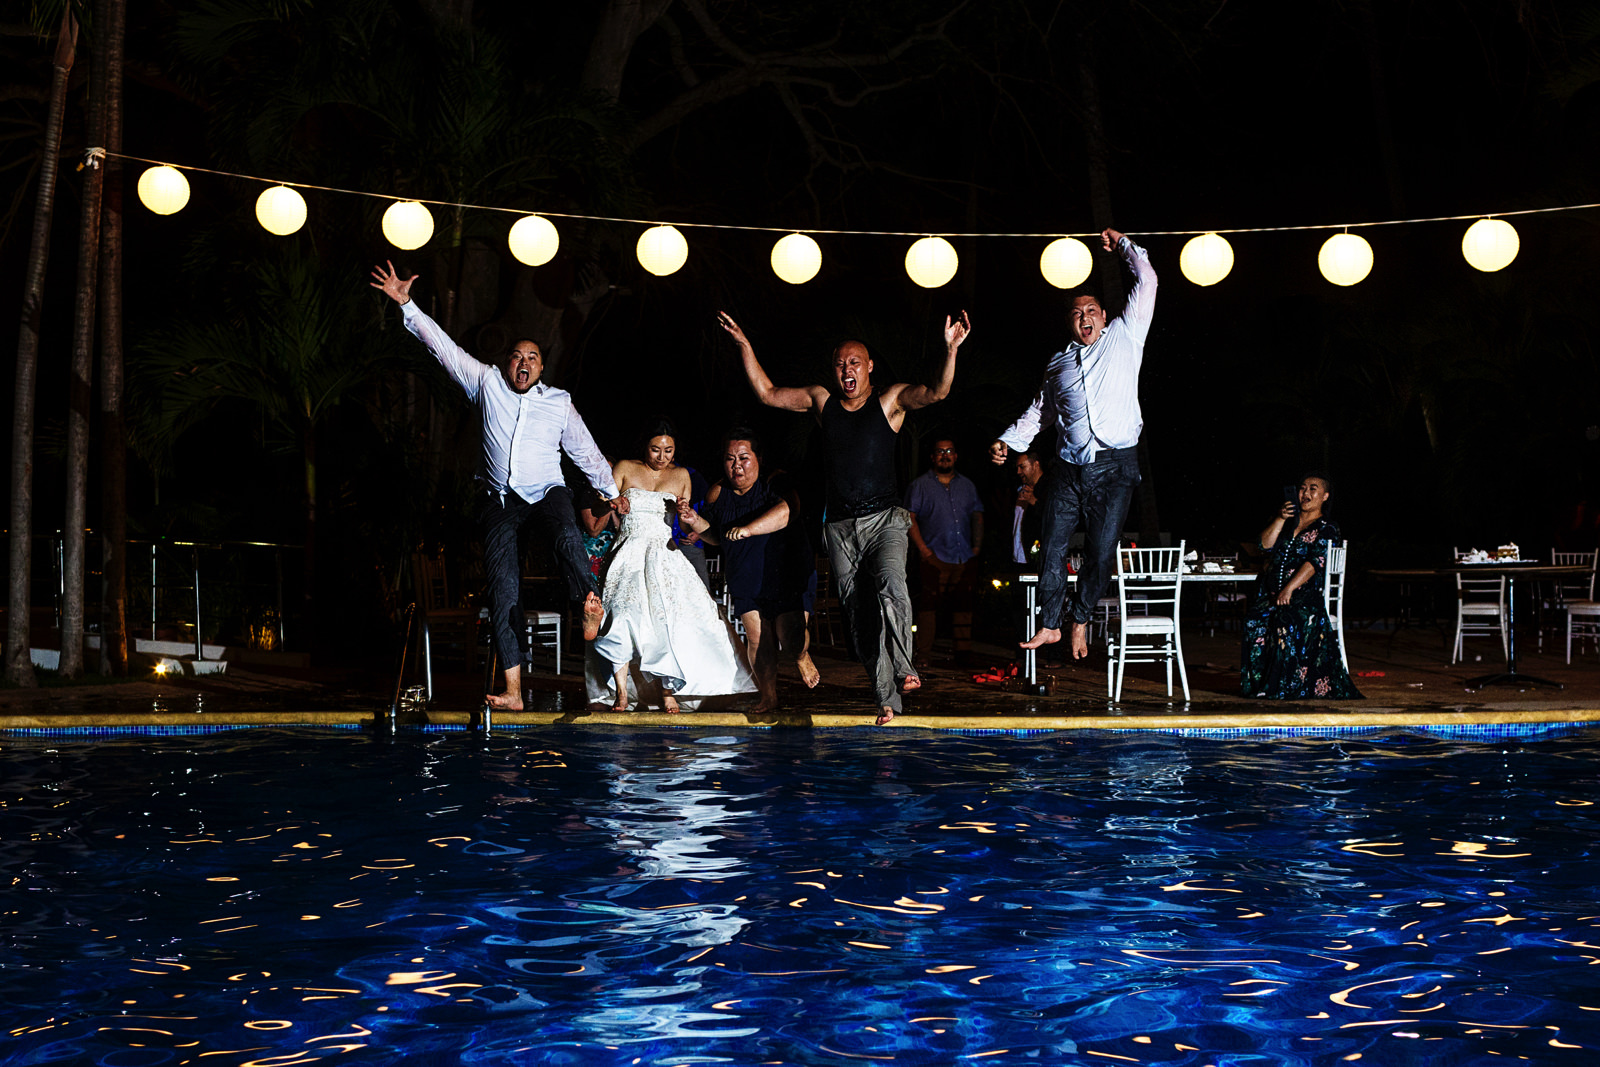 Groom and bride jump into the hotel pool among other wedding guests